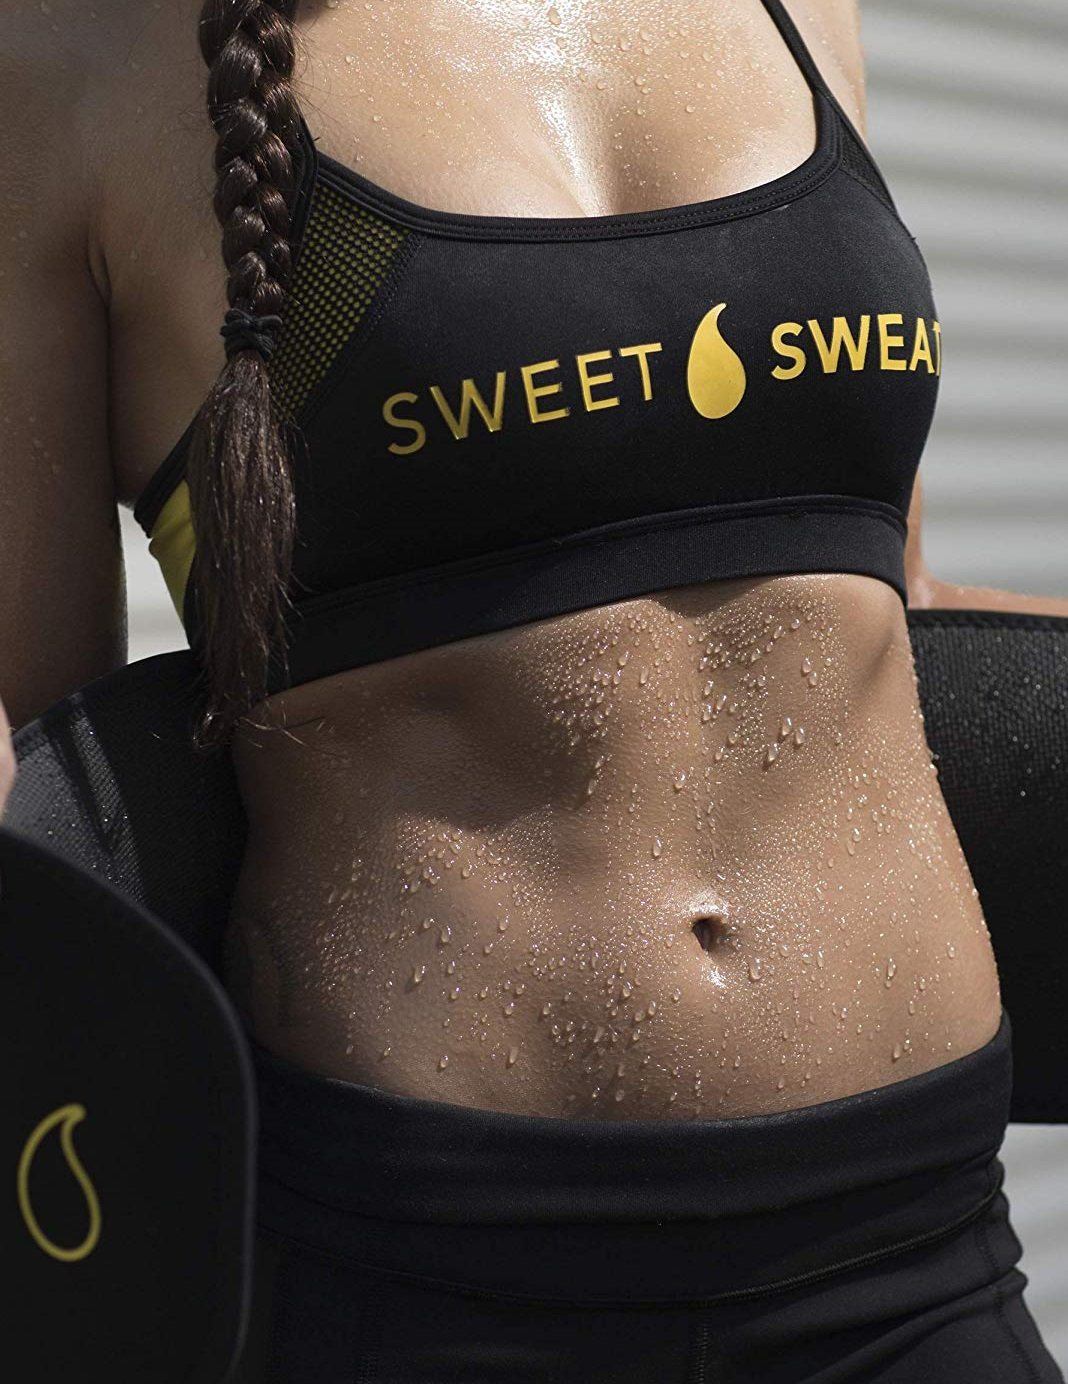 Sports Research Sweet Sweat Premium Waist Trimmer (Yellow Logo)